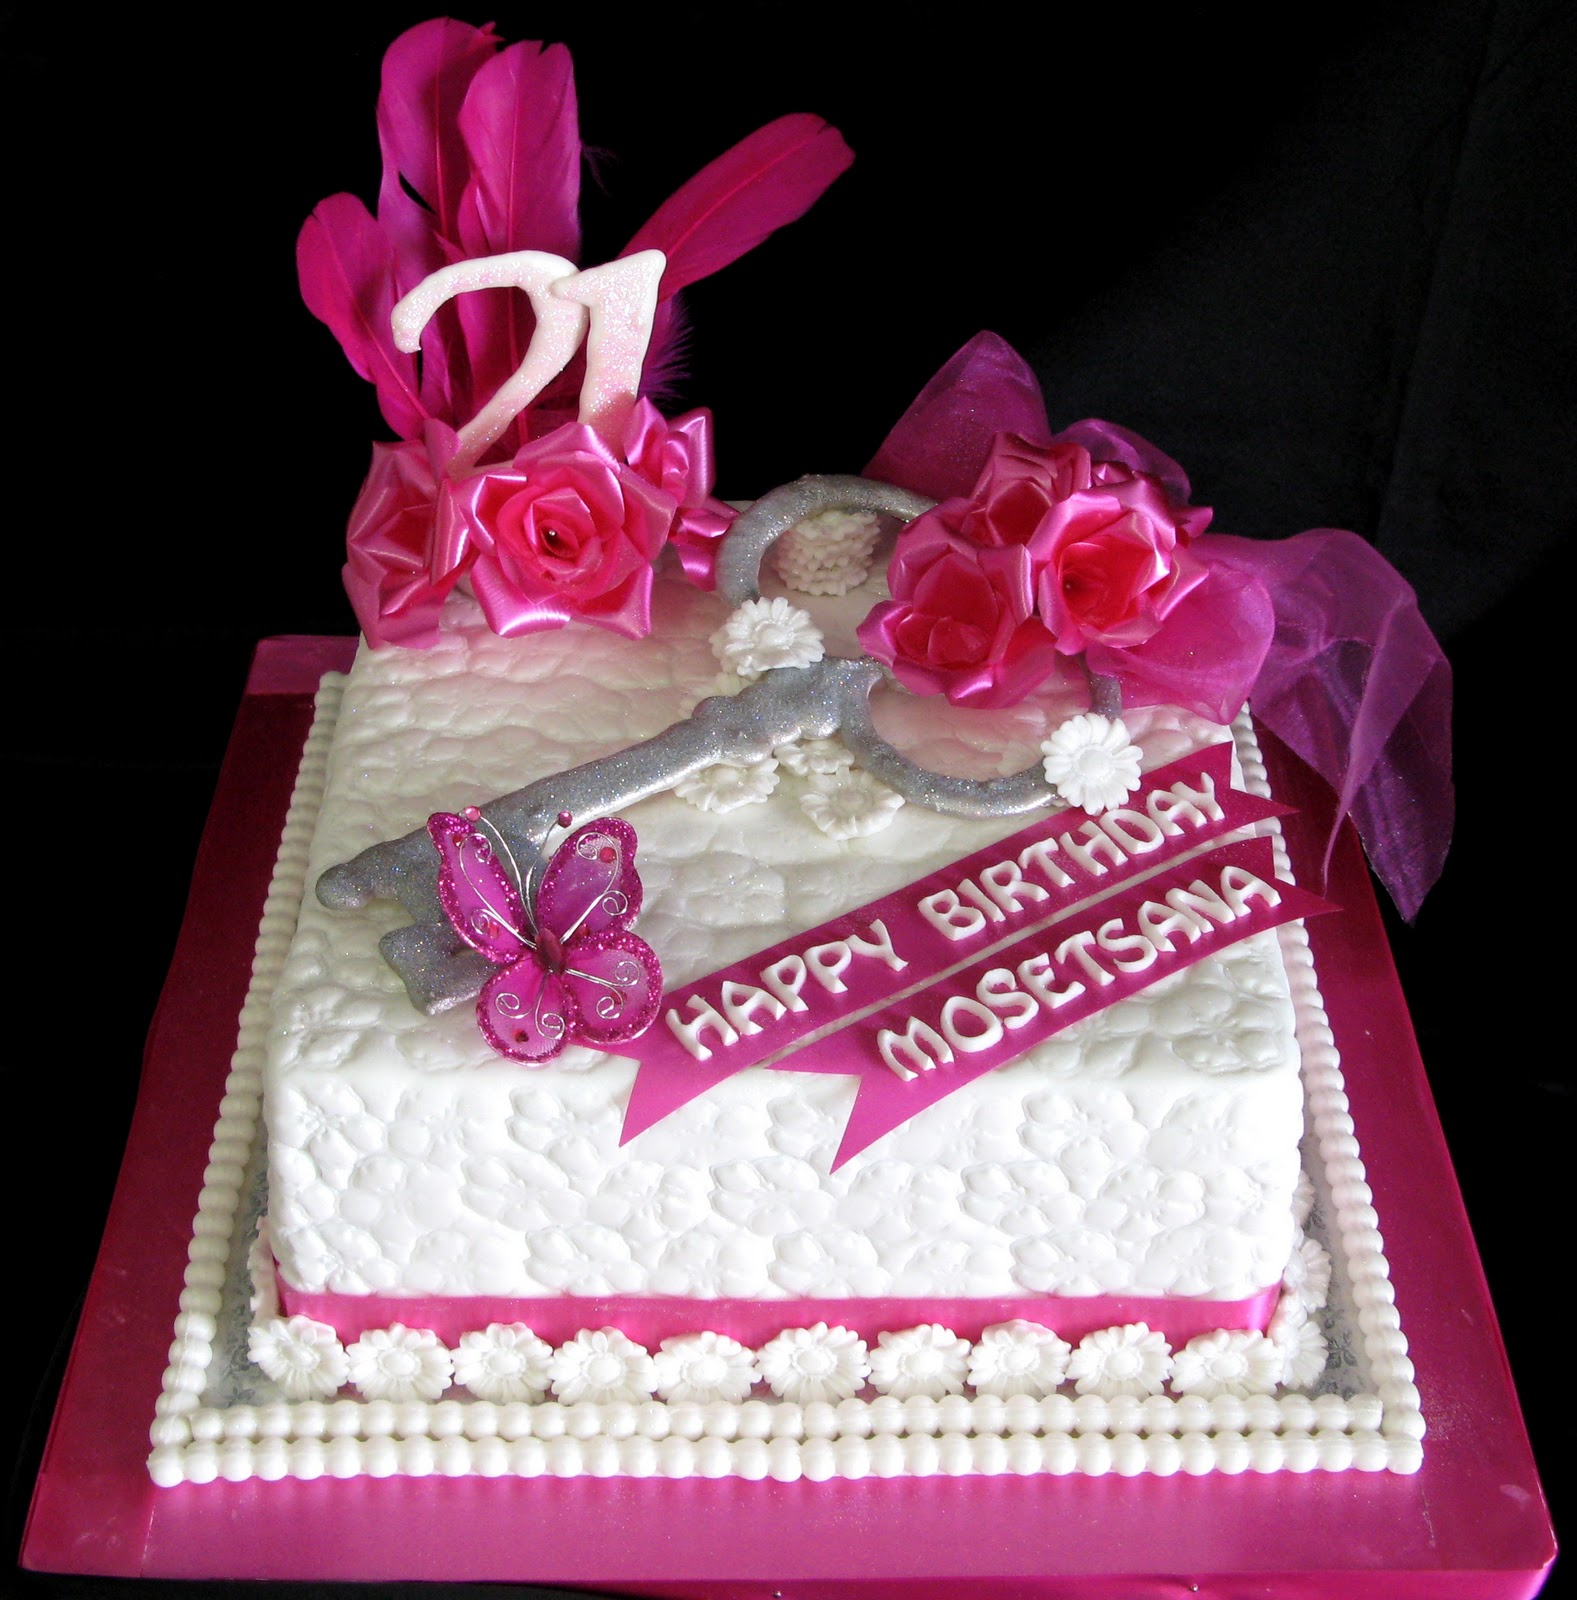 Special Occasion And Wedding Cakes: Sugarcraft By Soni: Birthday And Special Occasion Cakes